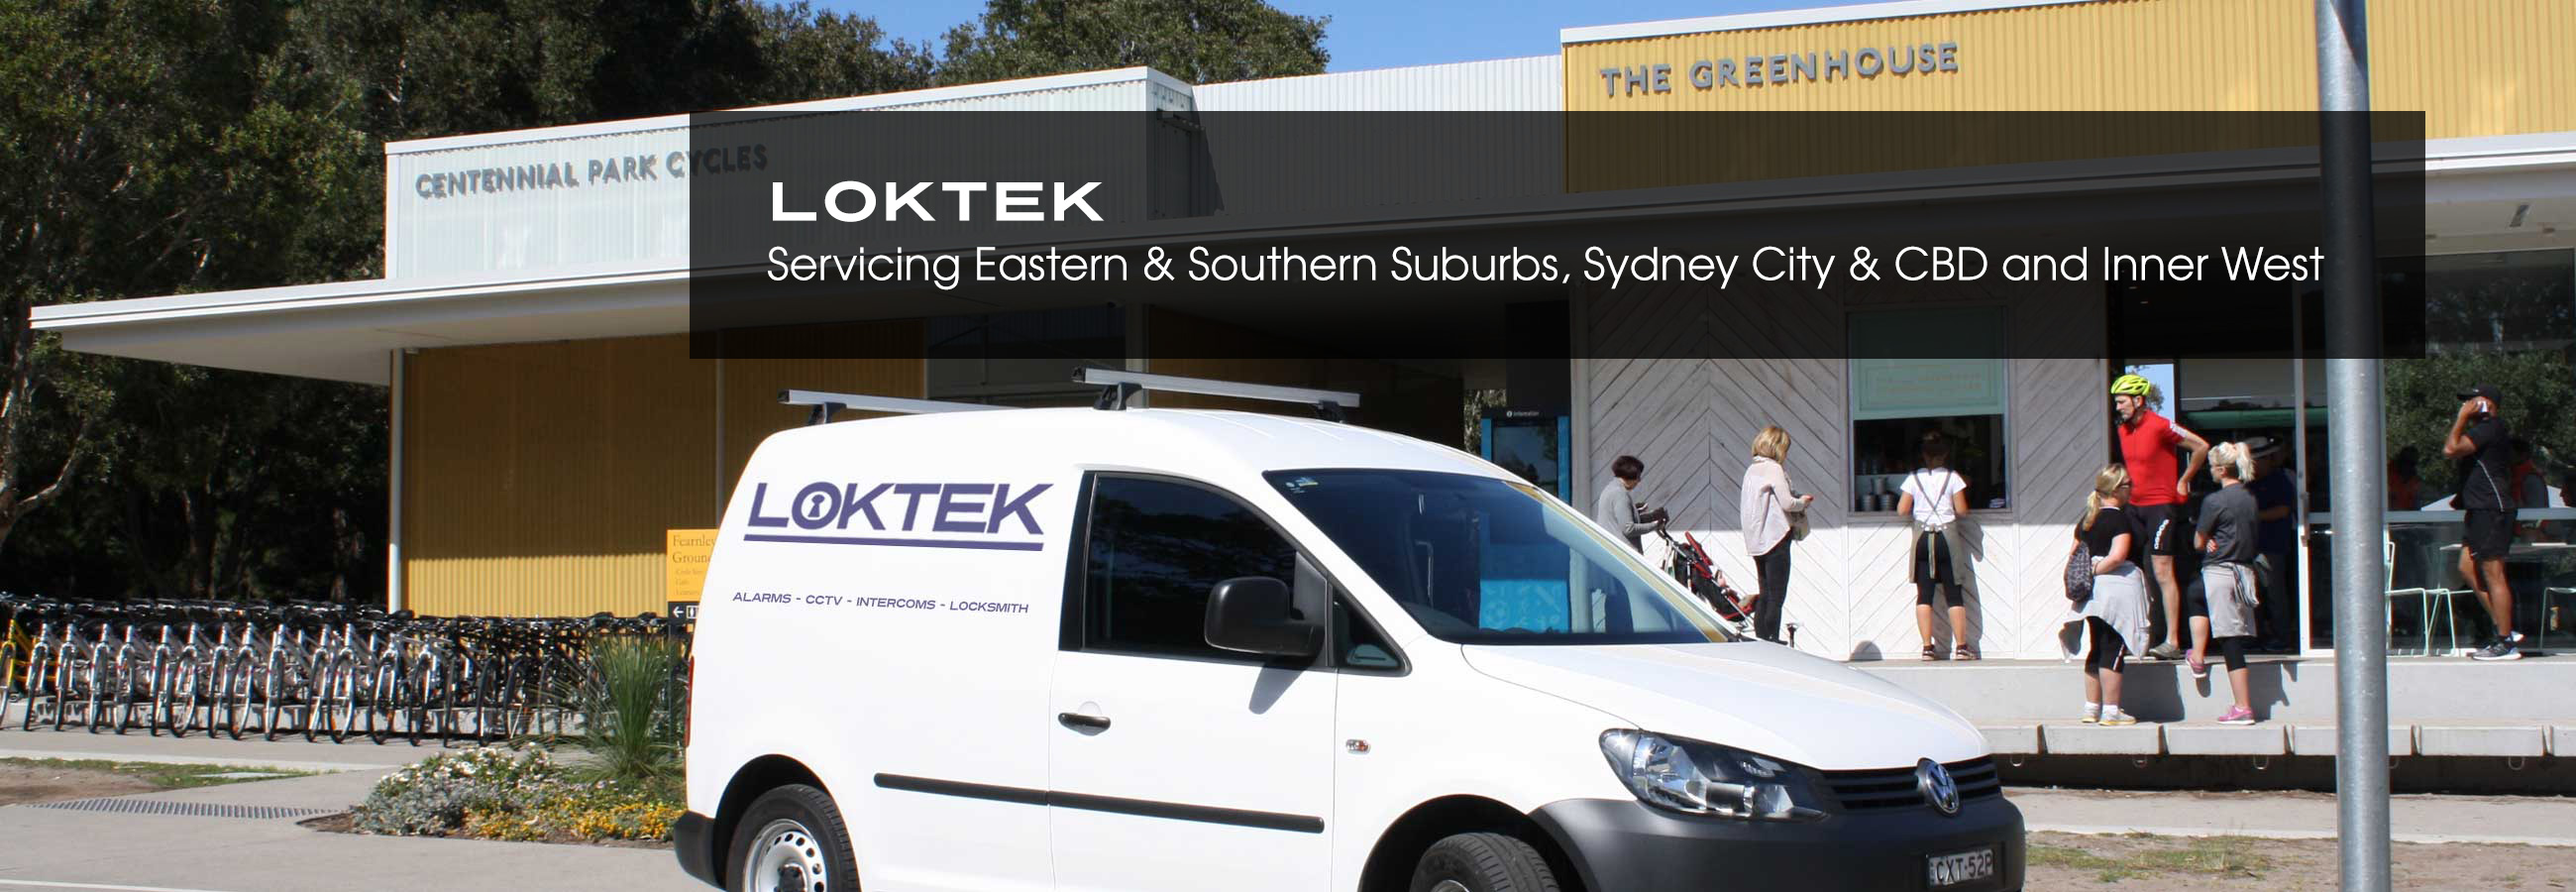 LOKTEK, 24 hour locksmith Sydney eastern suburbs, ALARMS, CCTV AND INTERCOMS